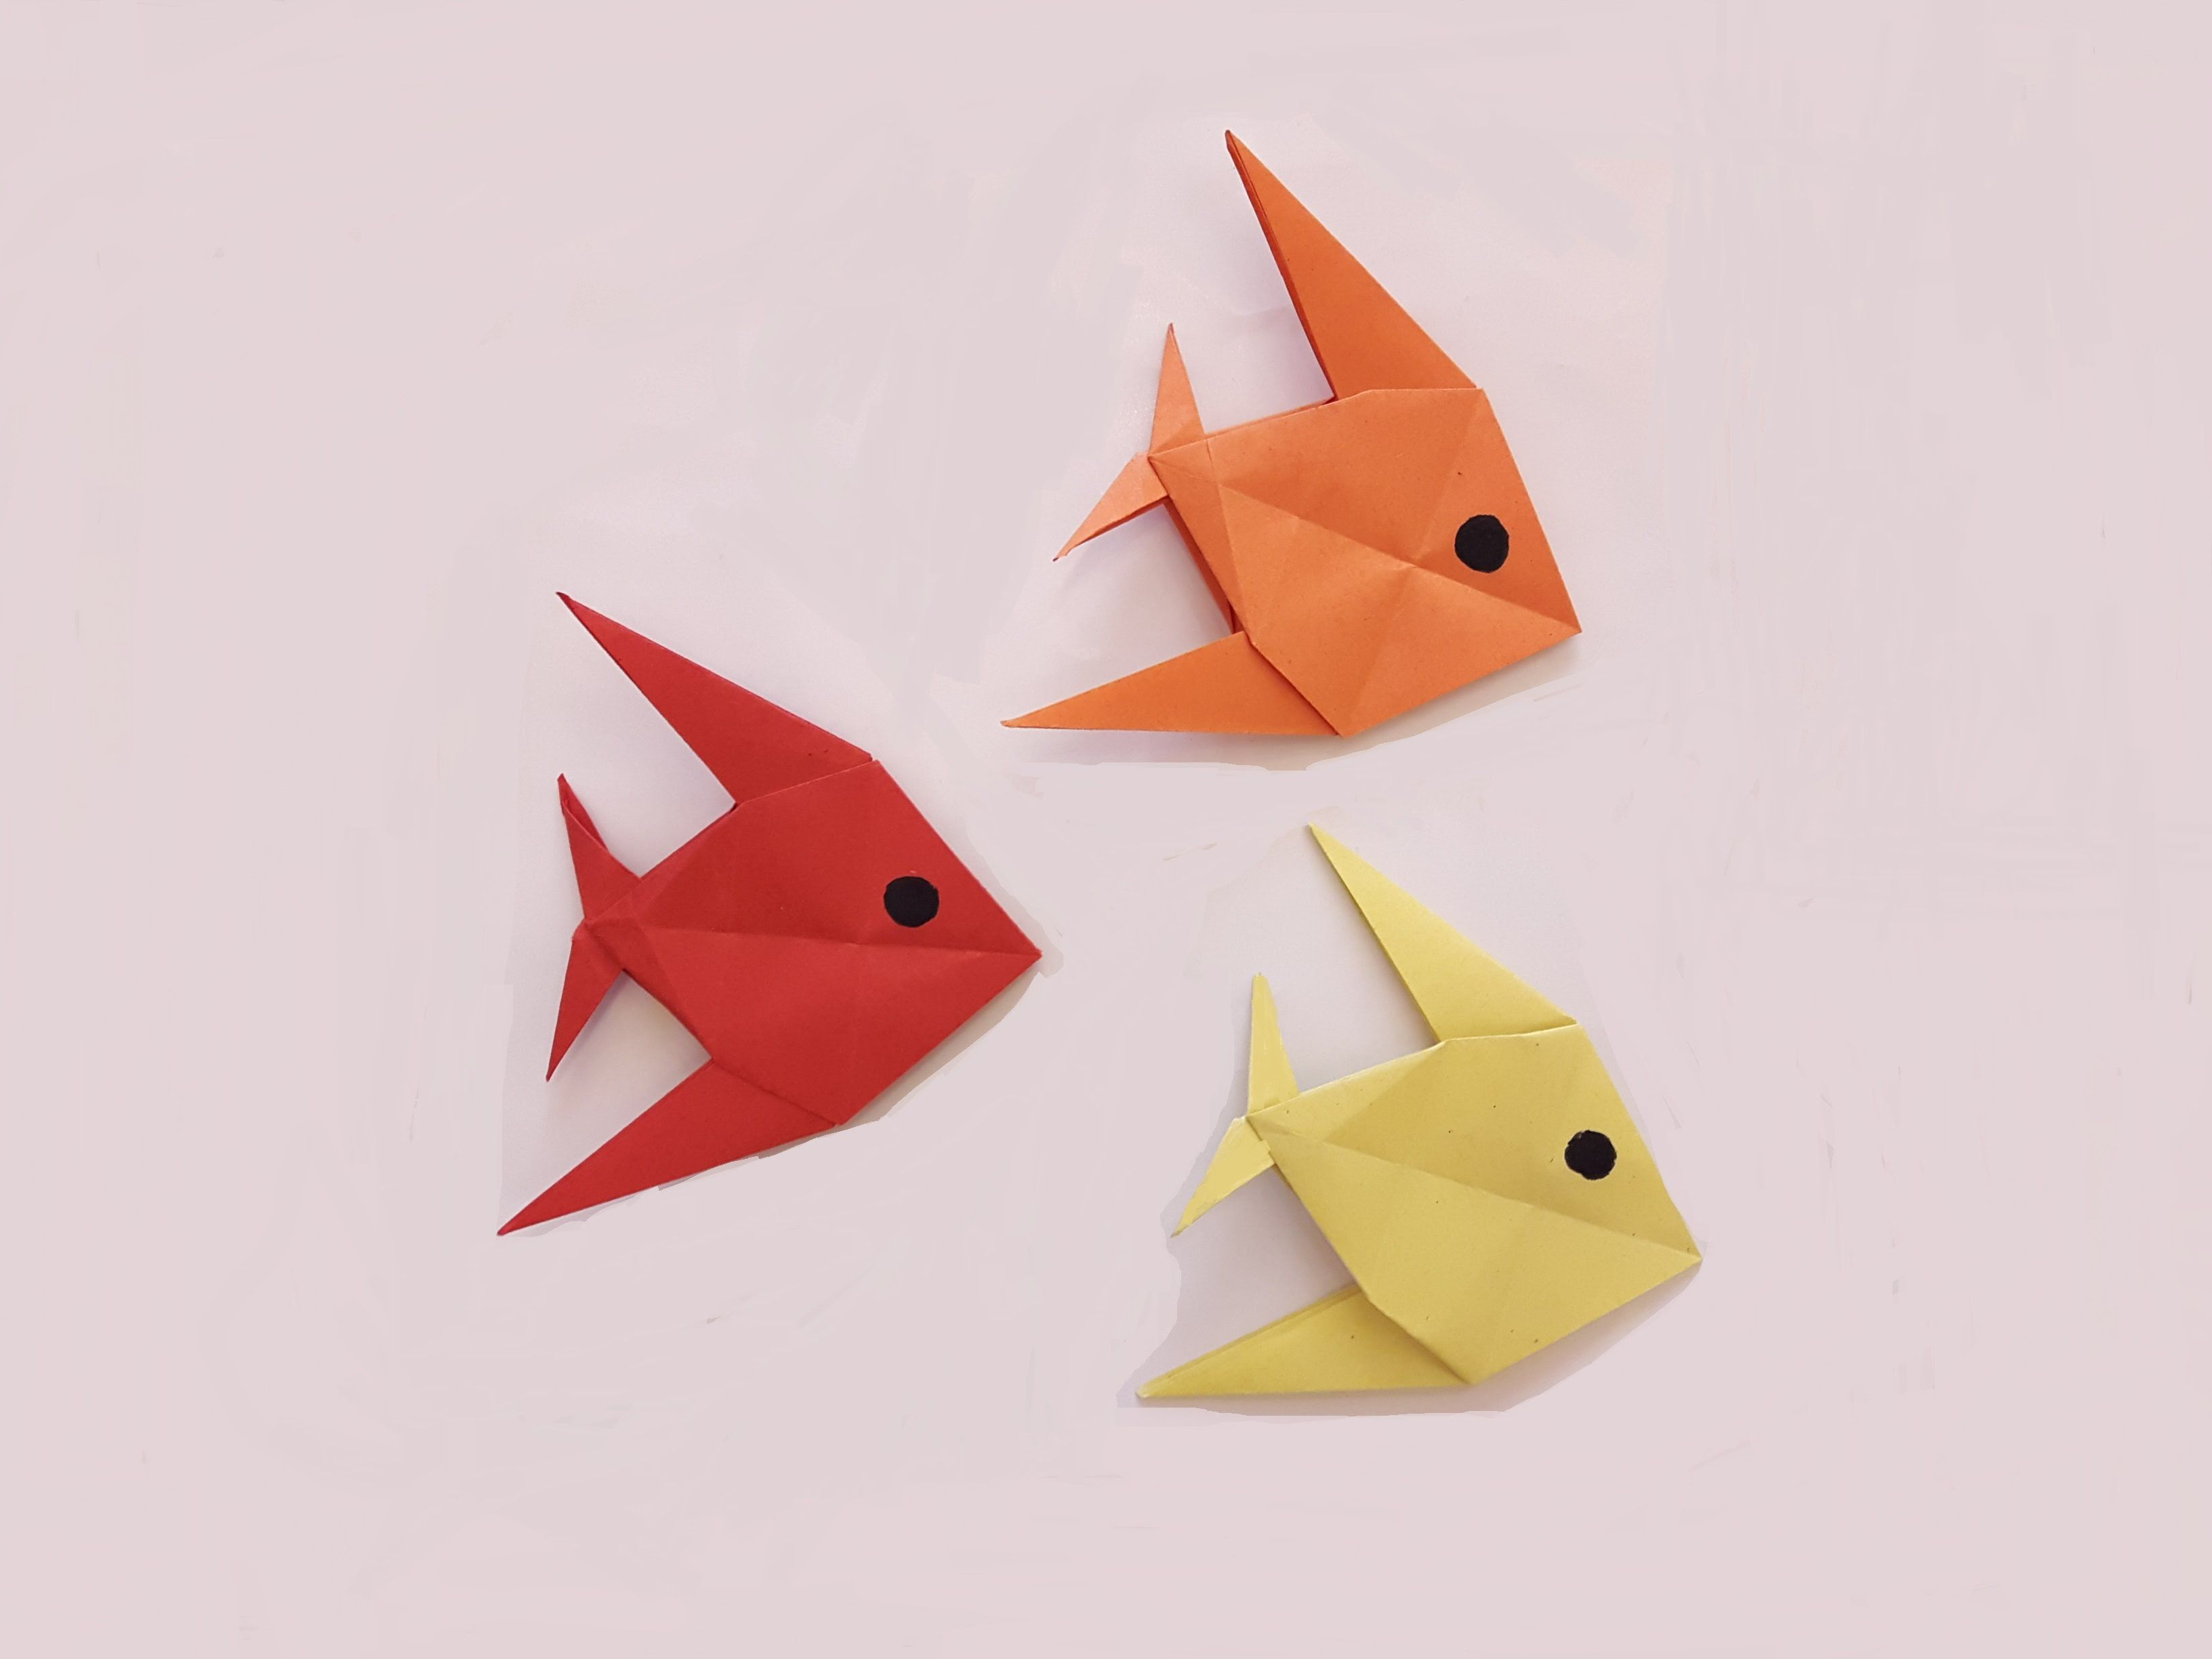 How to make a paper fish origami pinterest paper fish origami animal how to make an origami butterfly step by step jeuxipadfo Choice Image